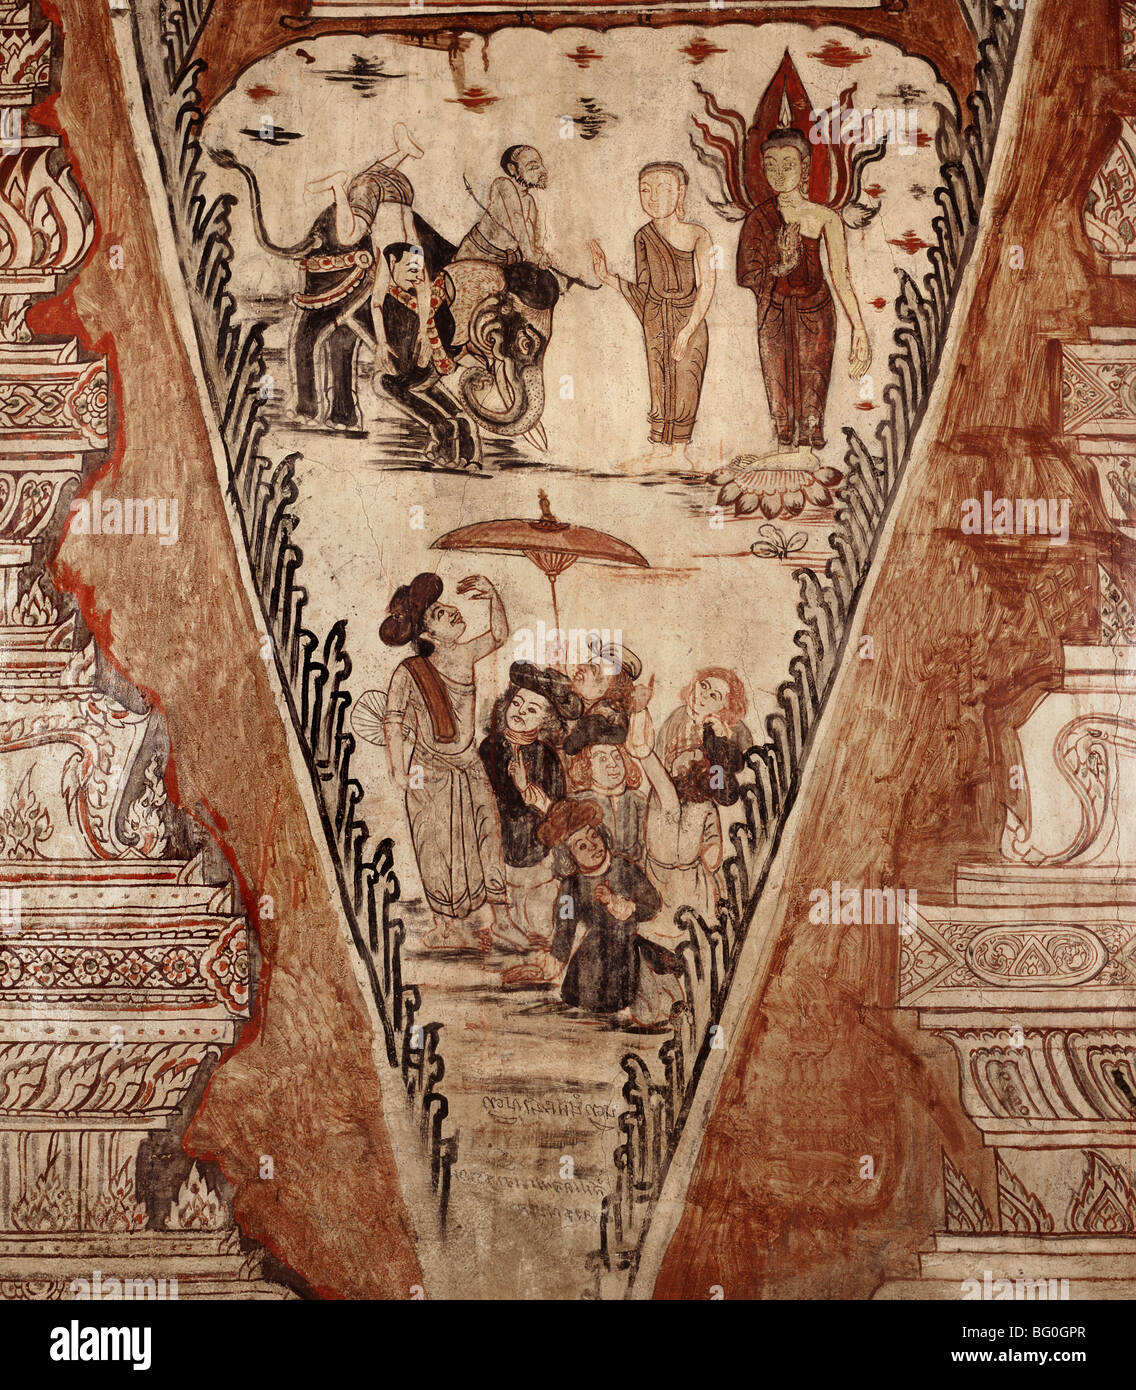 Buddha confounds the heretics, detail of mural dating from 1734, at Wat Ko Keo Suttharam, Petchaburi, Thailand, - Stock Image